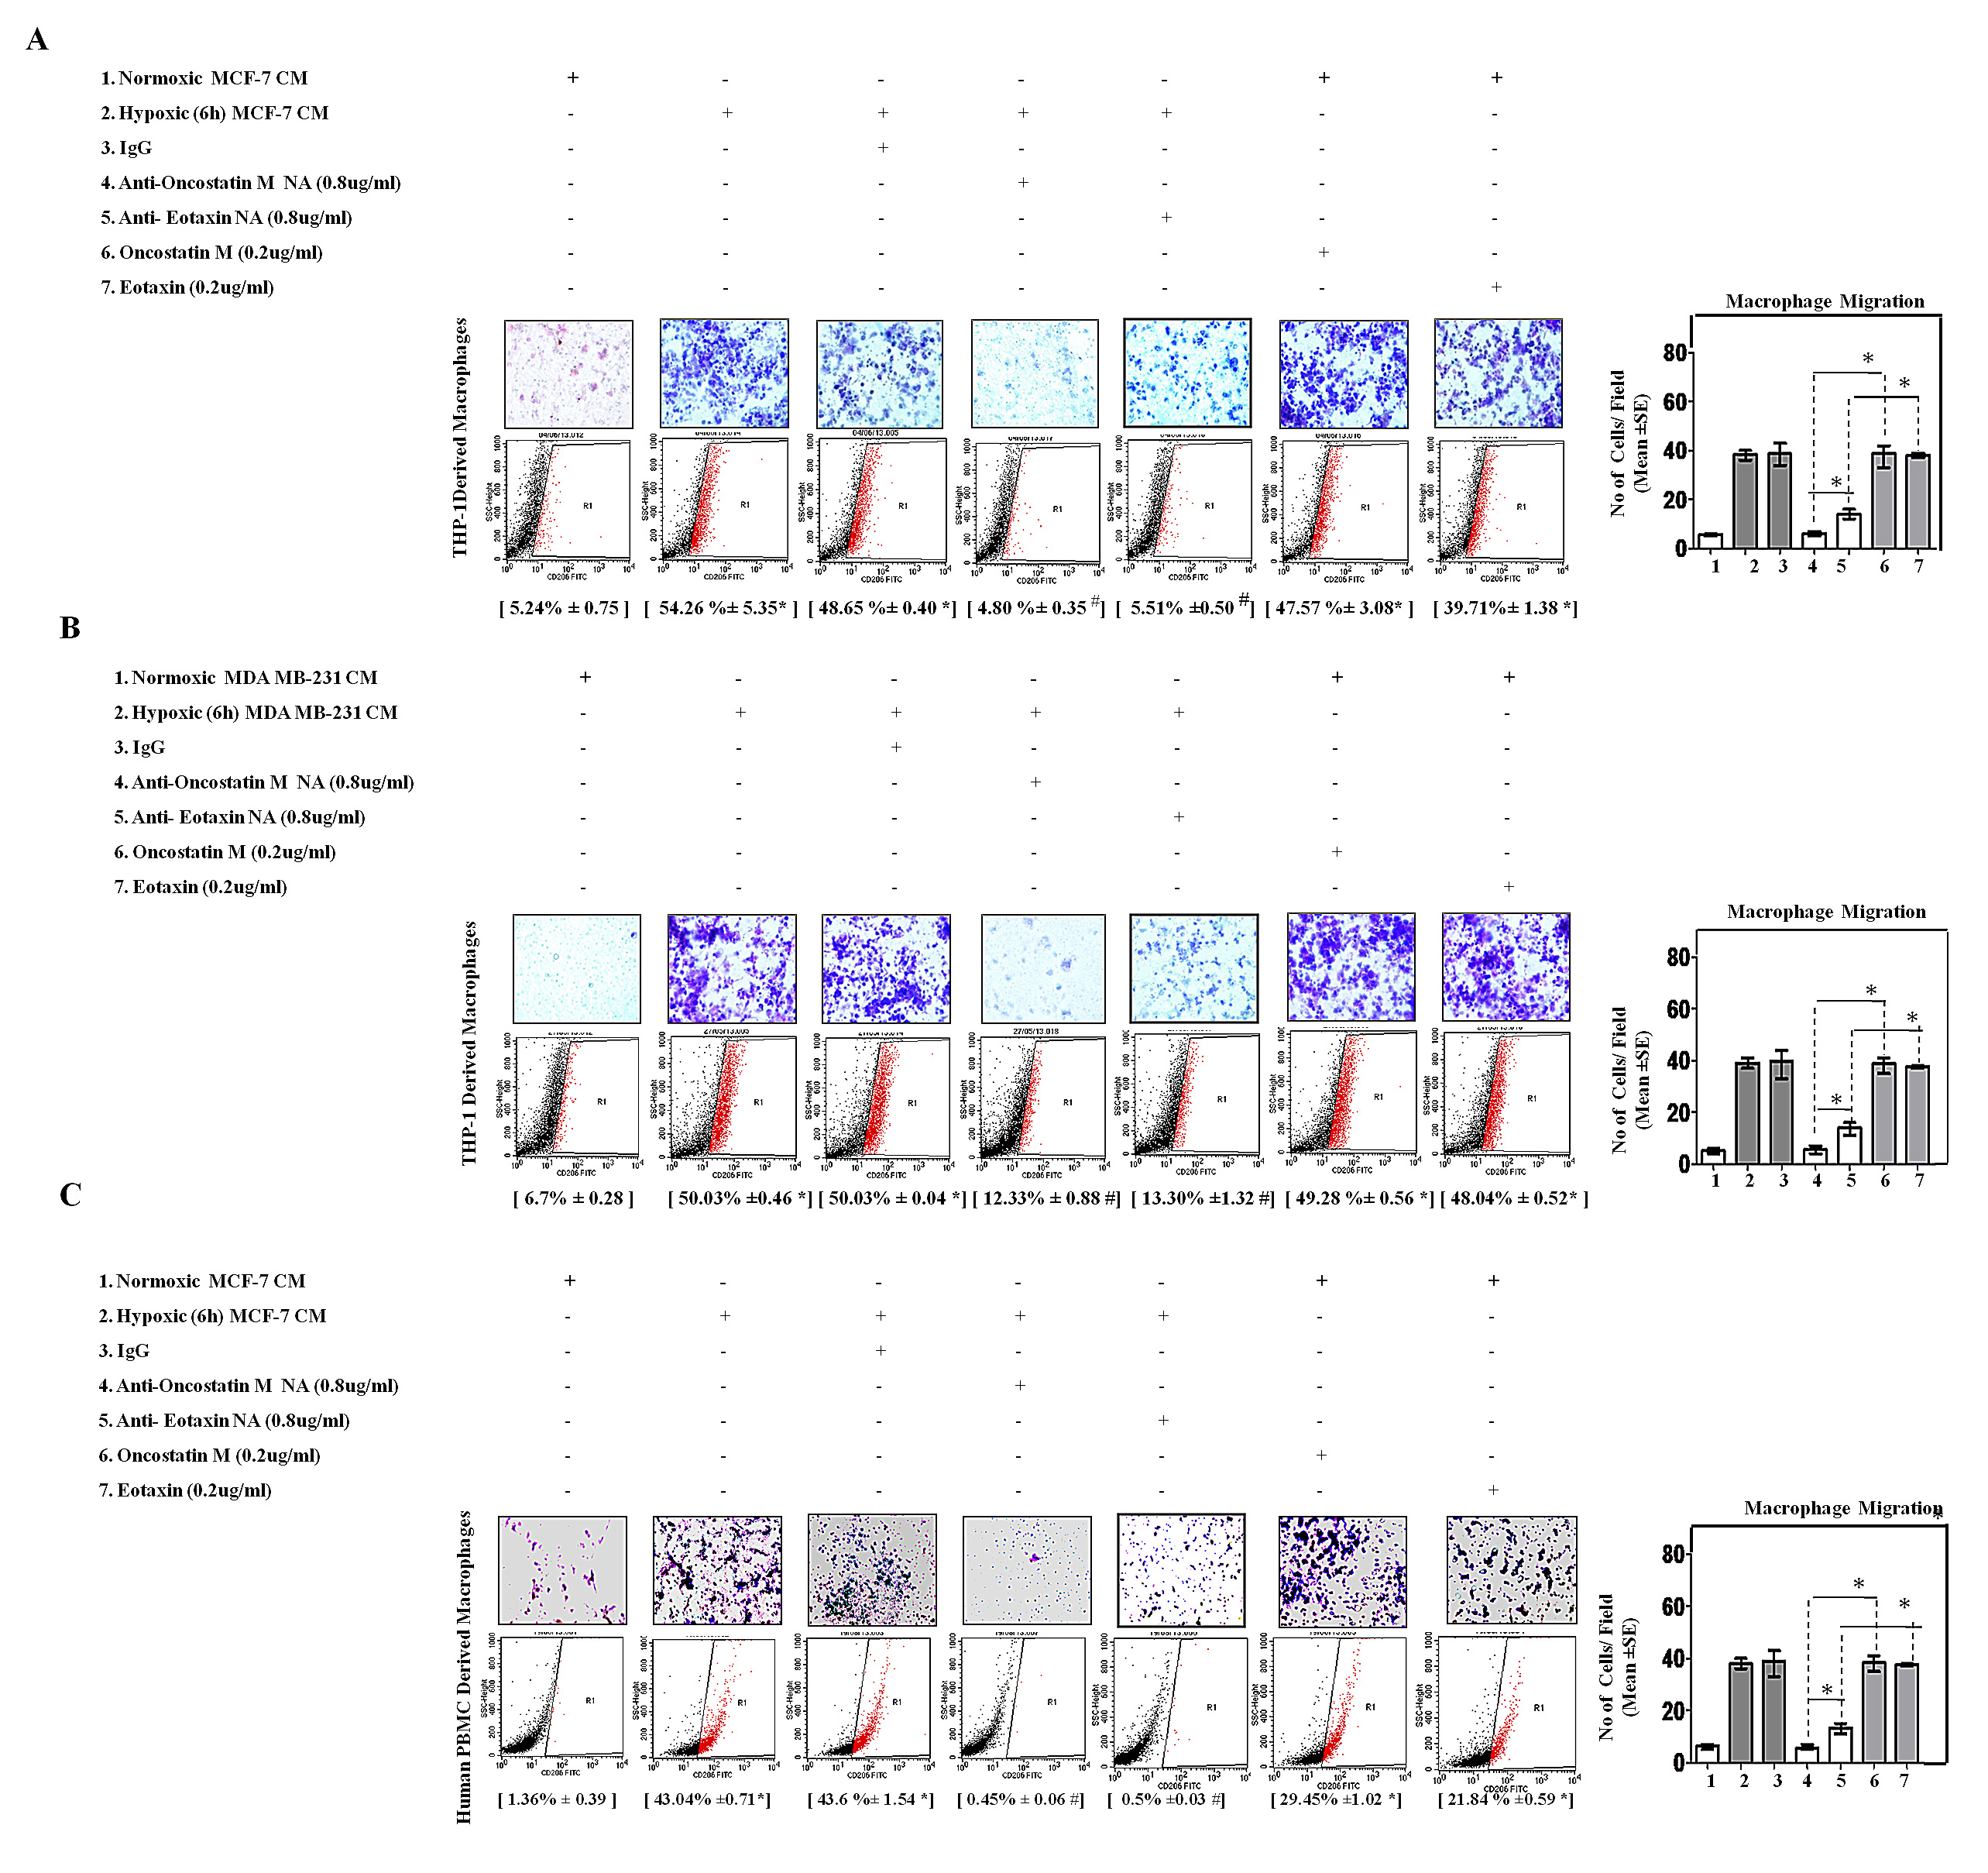 Fig.5: Neutralizing Antibody Mediated Blockade of OncostatinM and Eotaxin Function Prevented Macrophage Chemotaxis and their M2-Polarization.